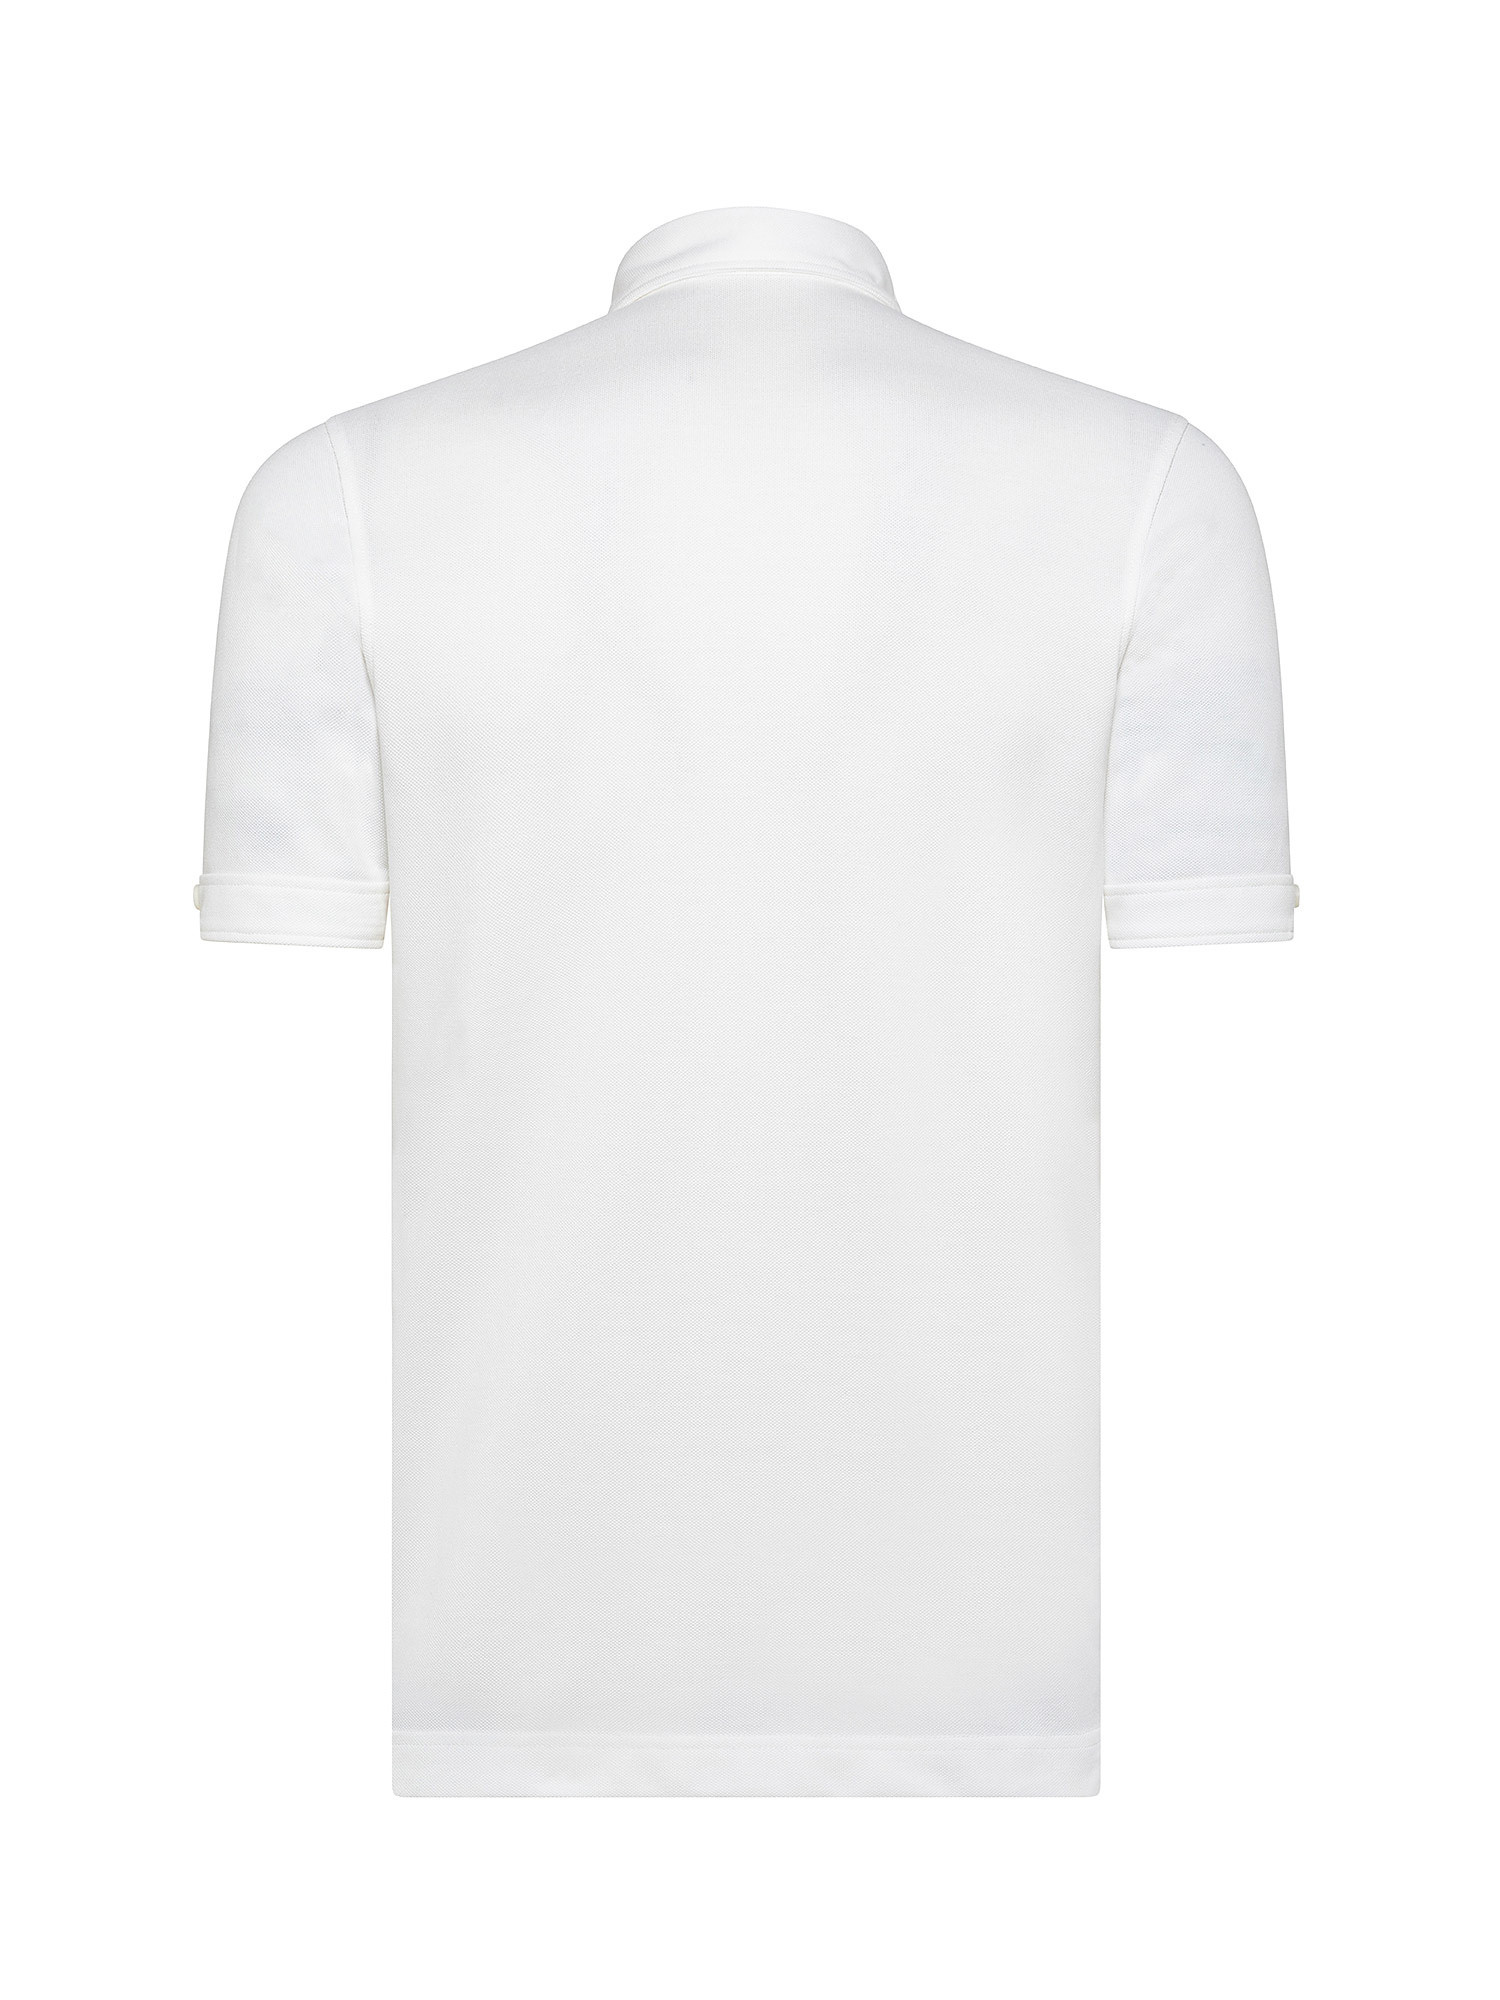 Polo con collo button down, Bianco, large image number 1